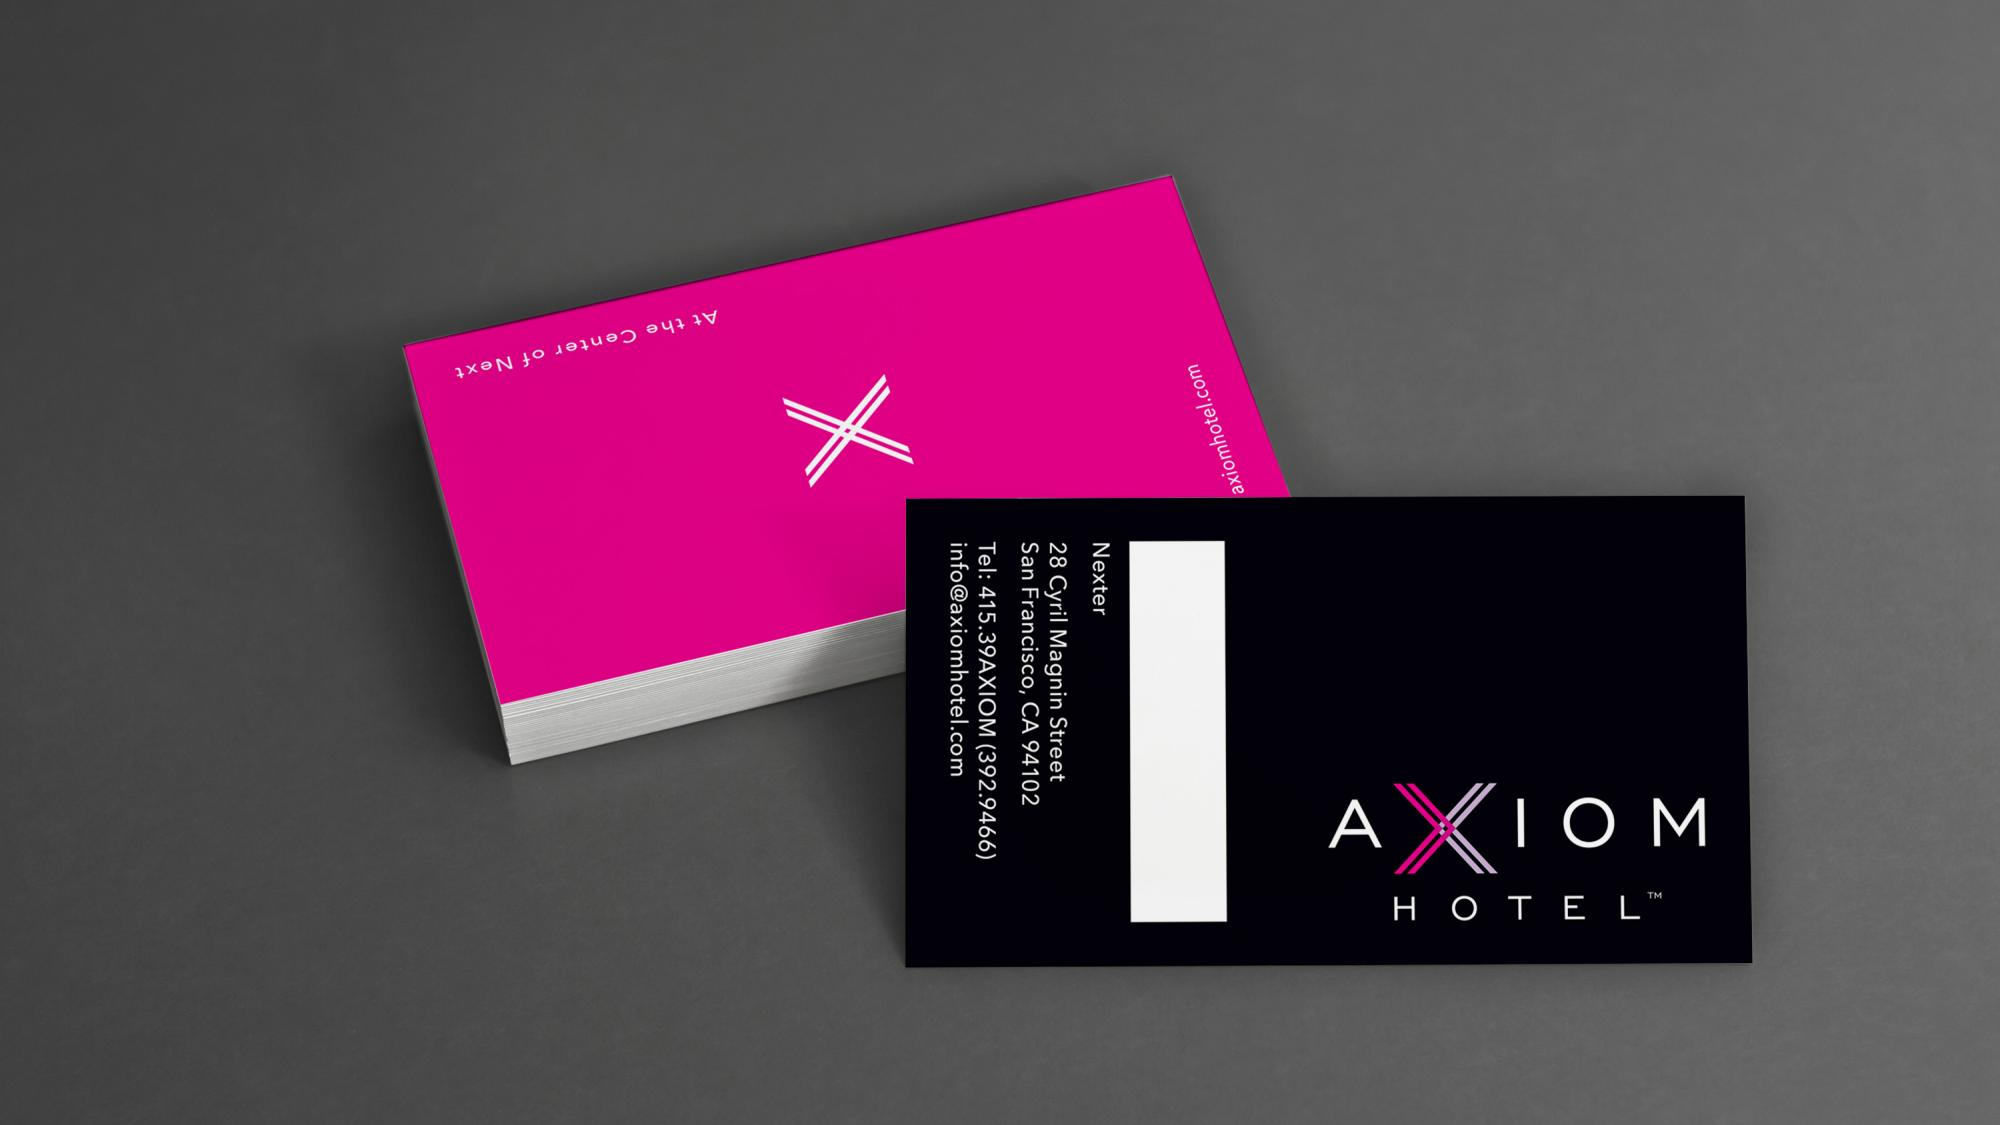 Axiom Hotel Mint